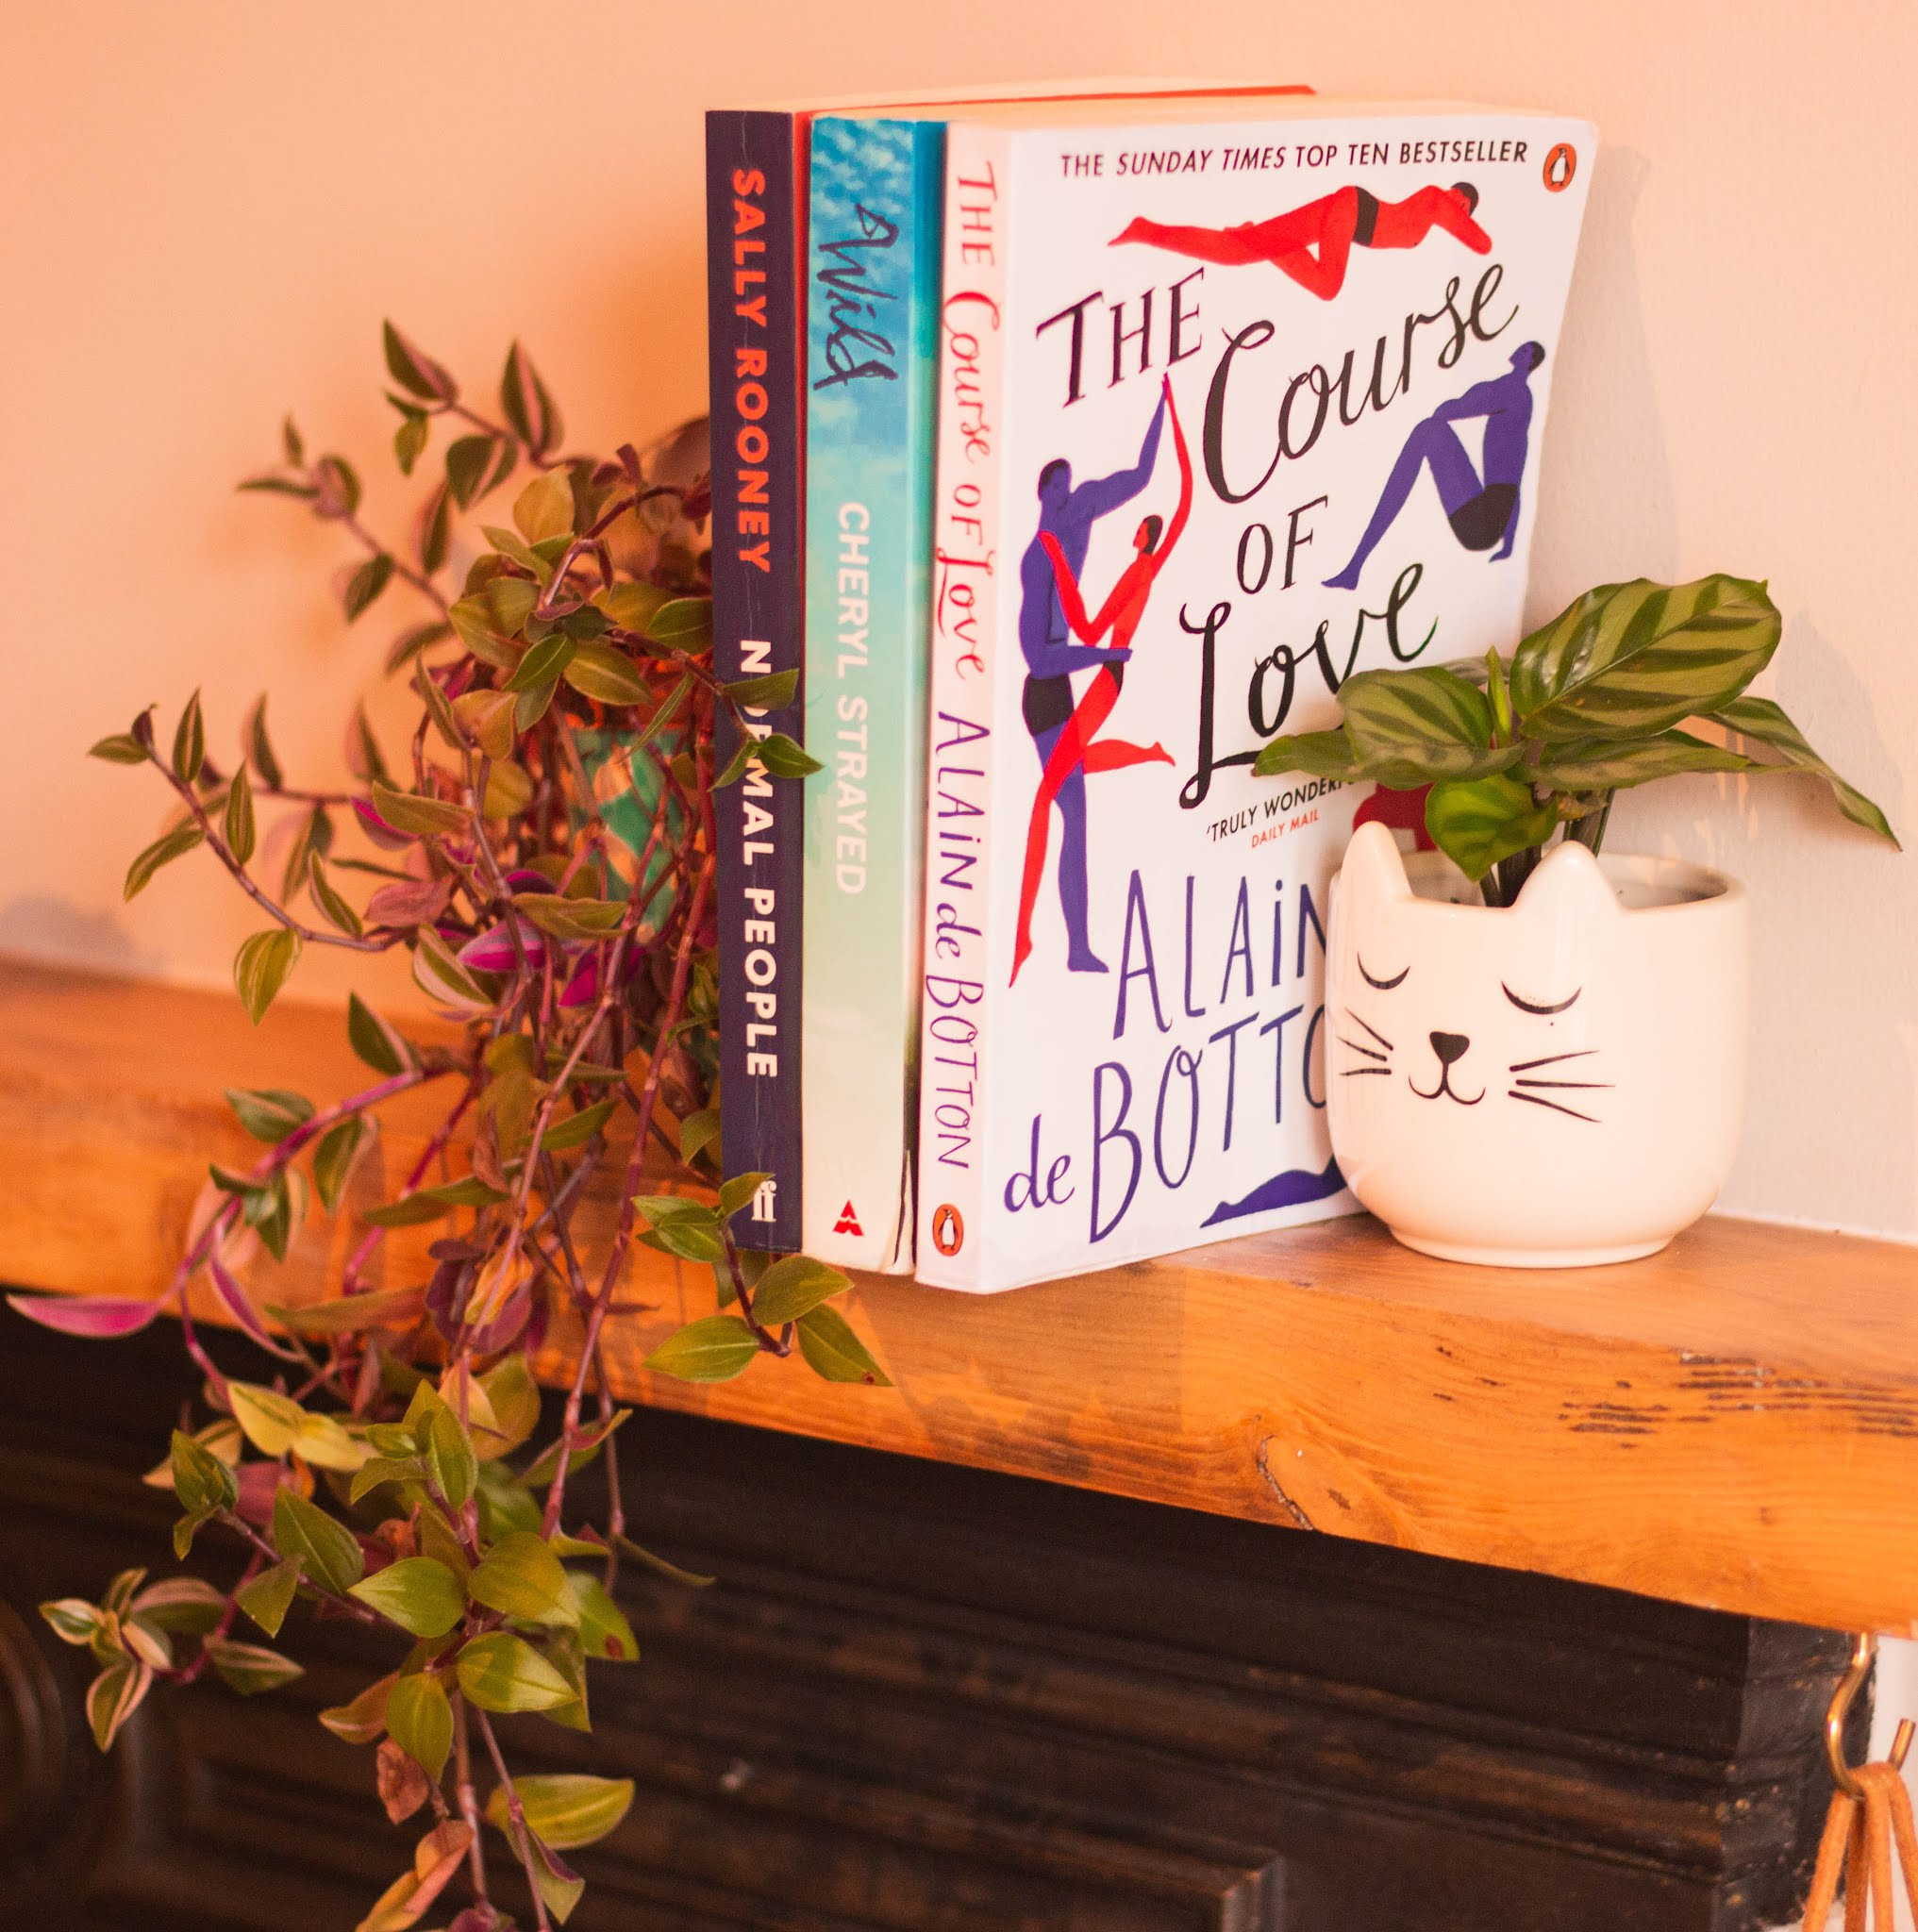 What I've been reading: Books reviews on Normal People, Wild and The Course of Love